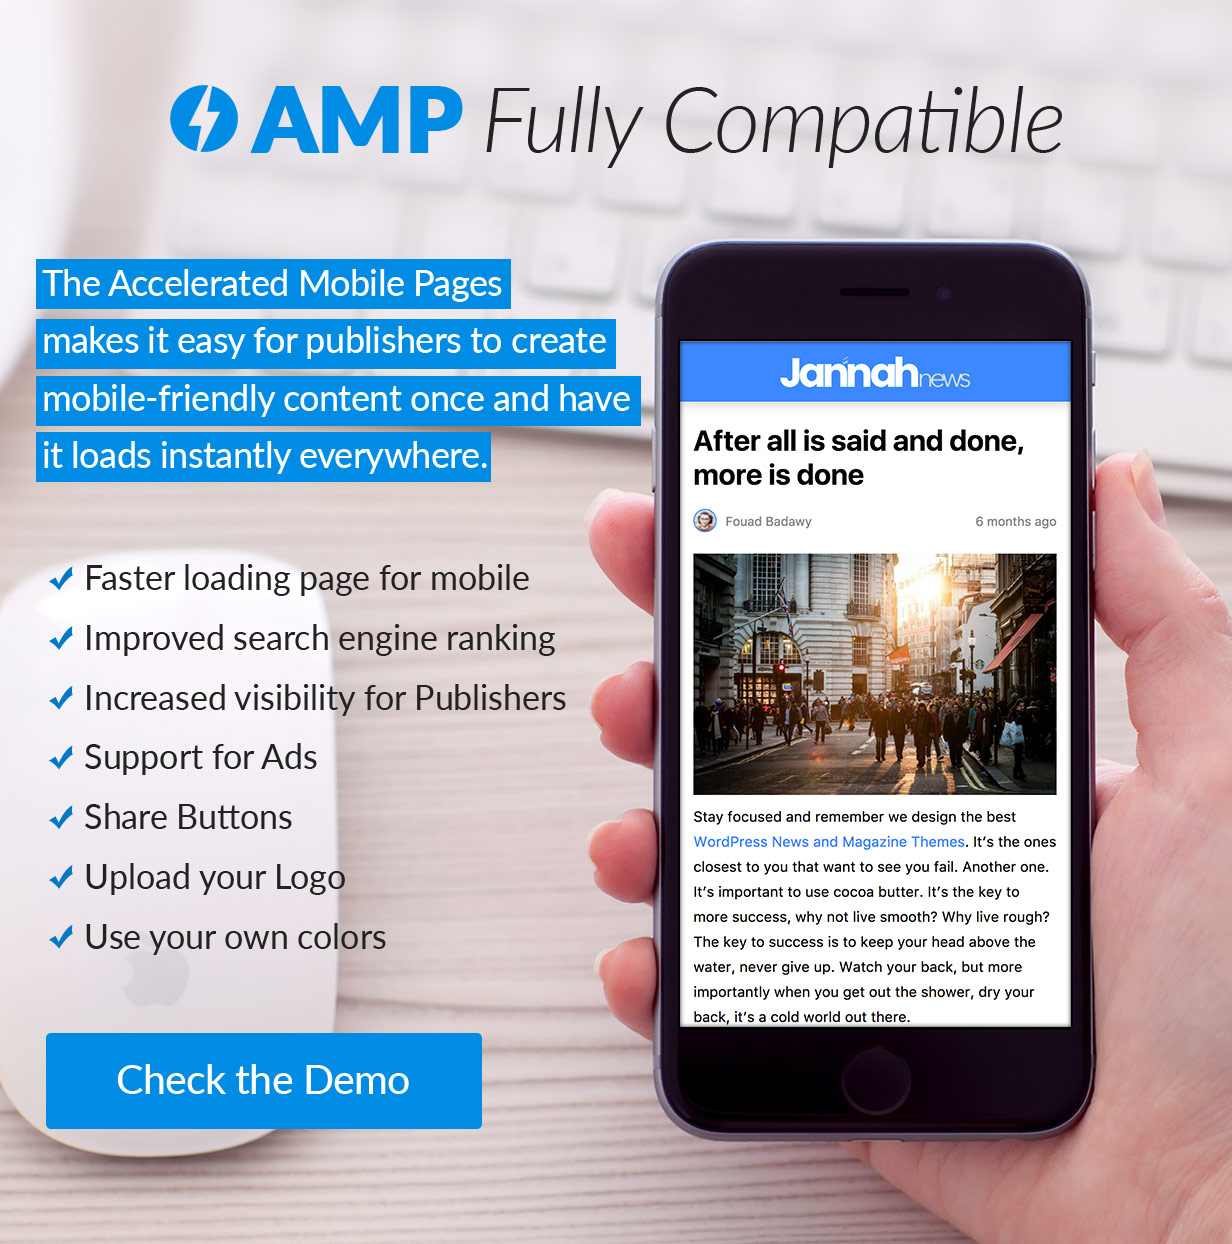 Fully compatible with the Accelerated Mobile Pages (AMP) Project